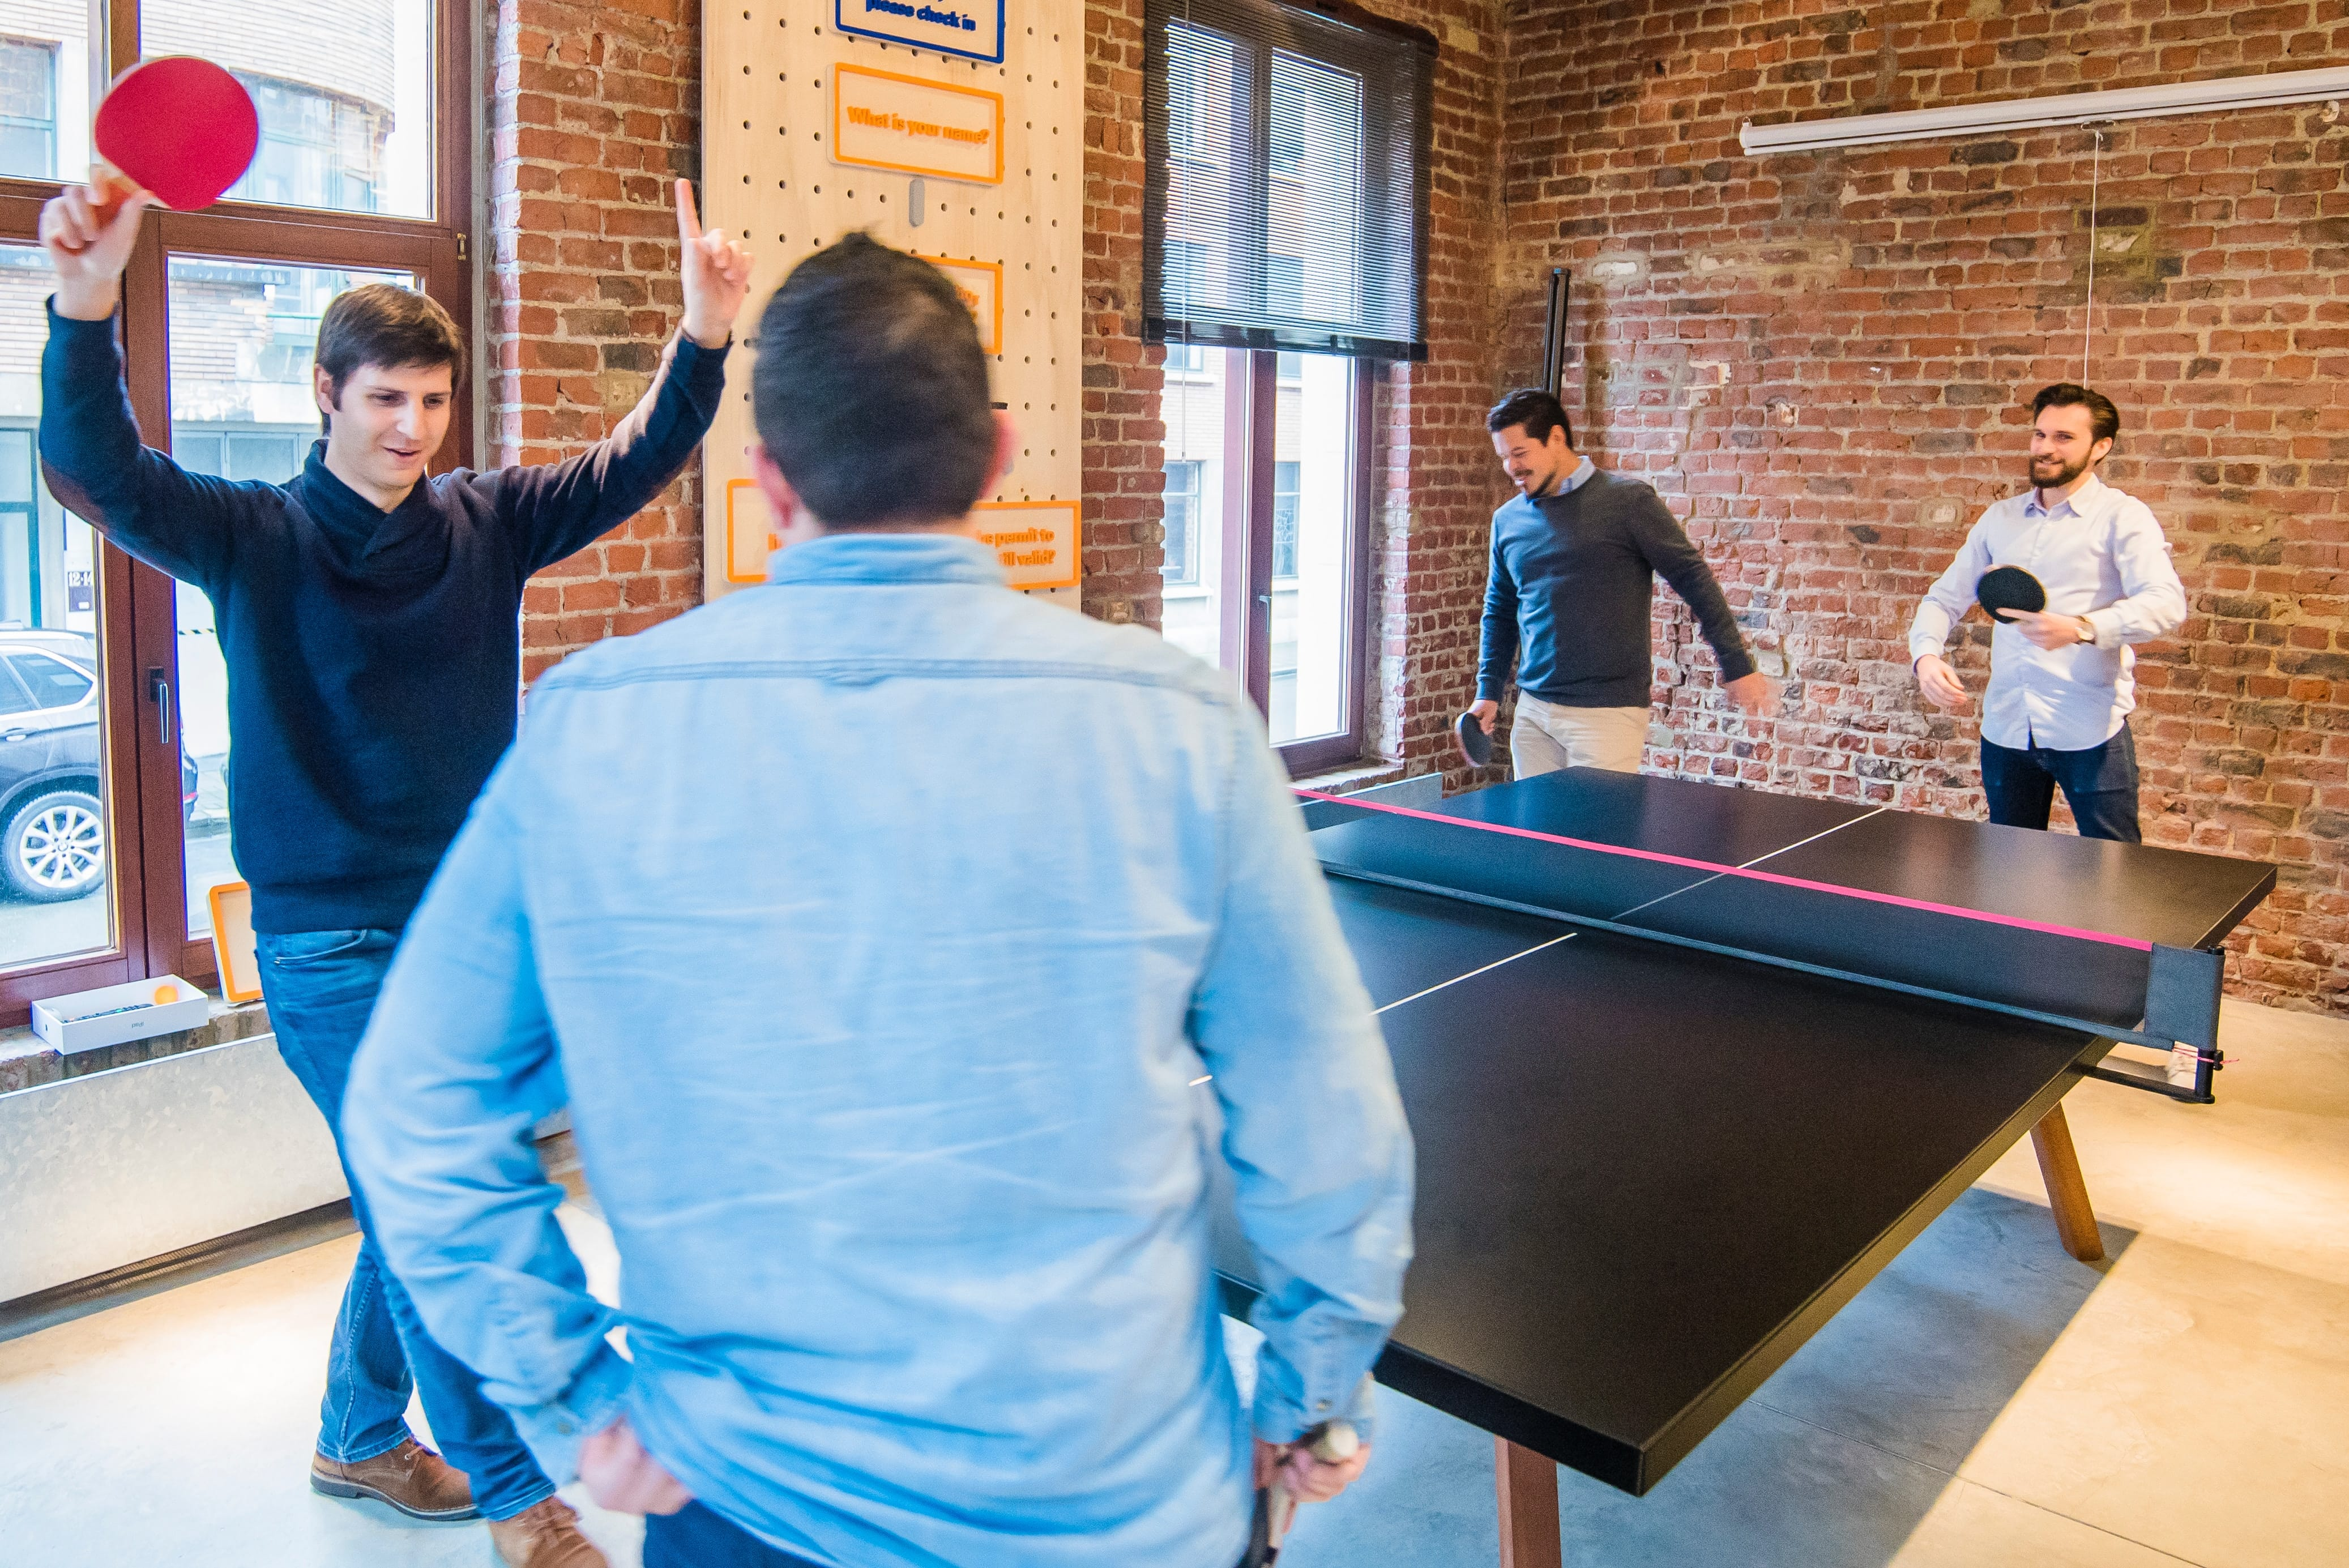 Four men playing table tennis; image by Proxyclick Visitor Management System, via Unsplash.com.